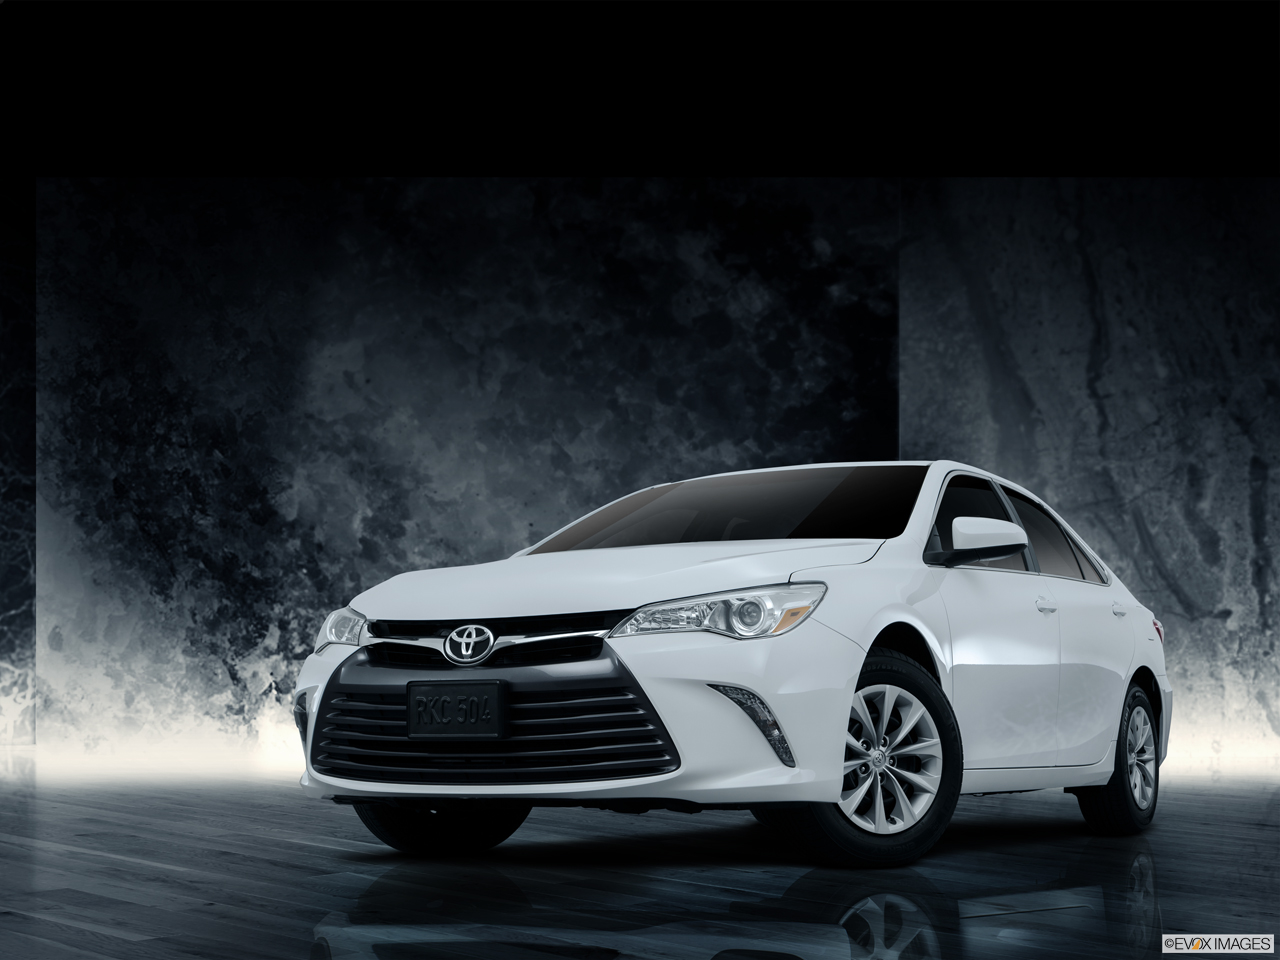 2017 toyota camry dealer in east syracuse romano toyota. Black Bedroom Furniture Sets. Home Design Ideas